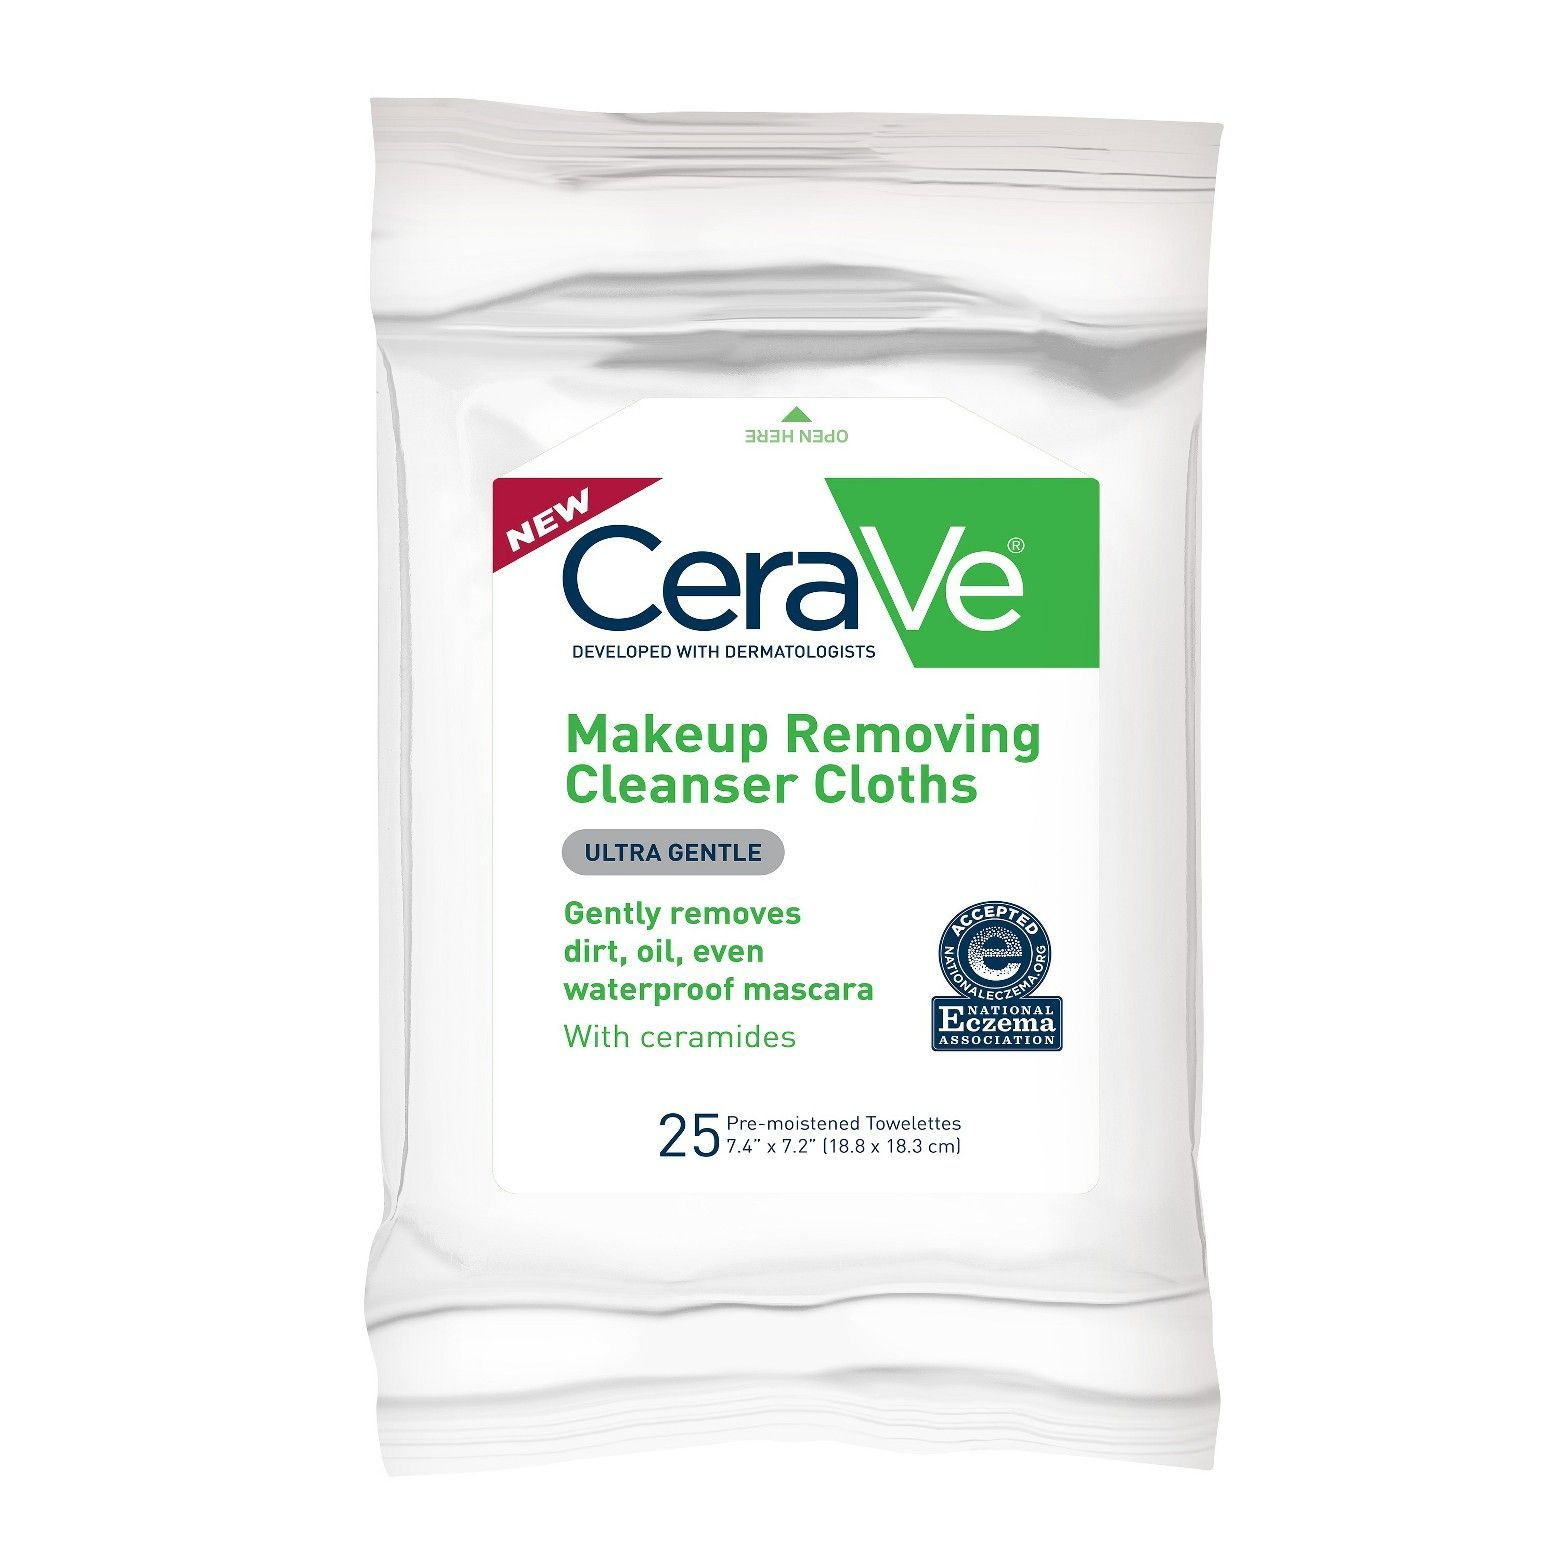 CeraVe Hydrating Makeup Remover Cloths in 25 ct are ultra